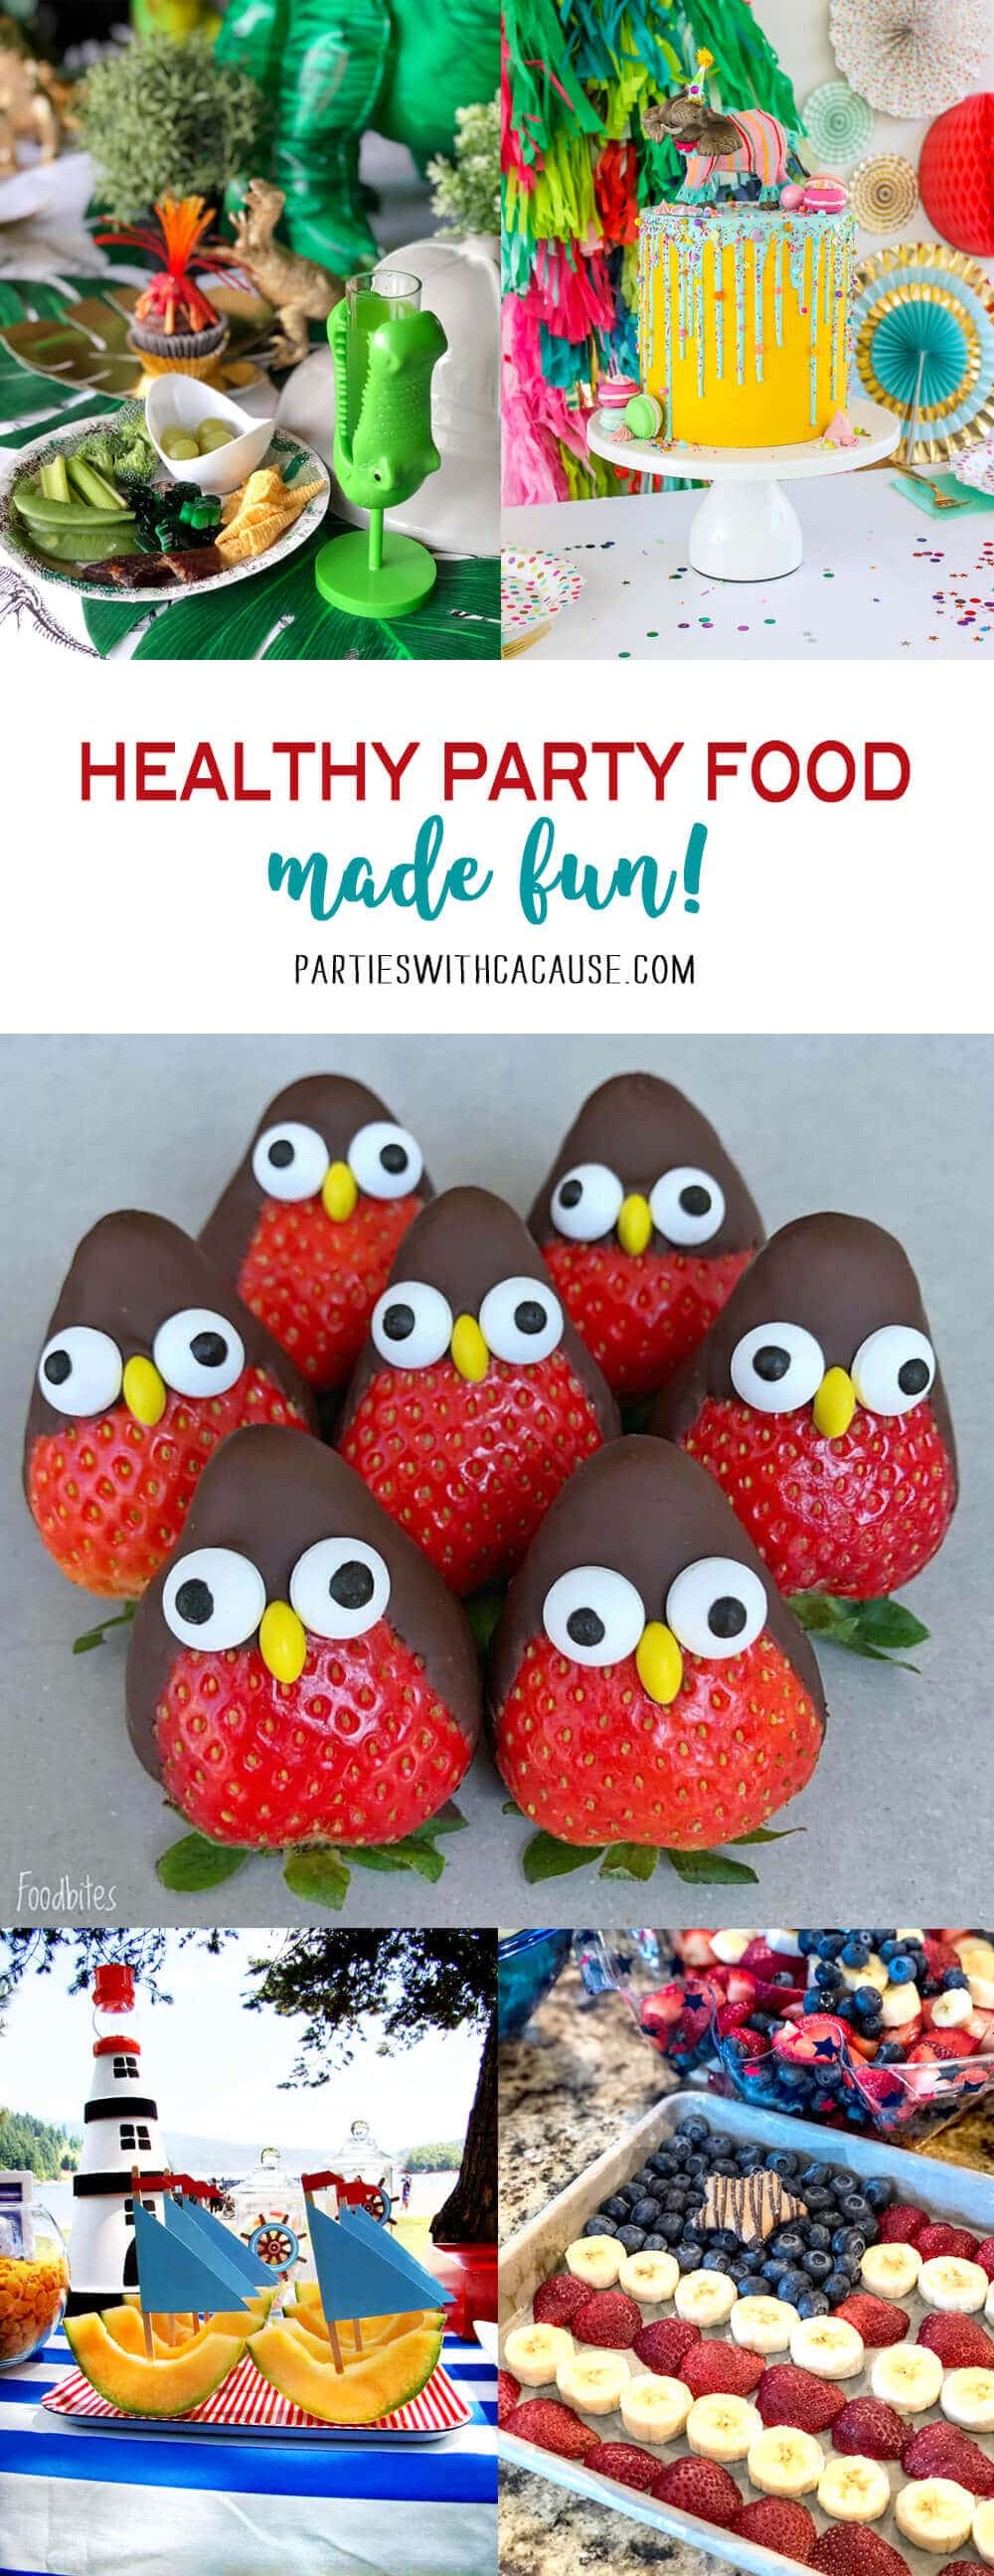 Healthy Party Foods made fun